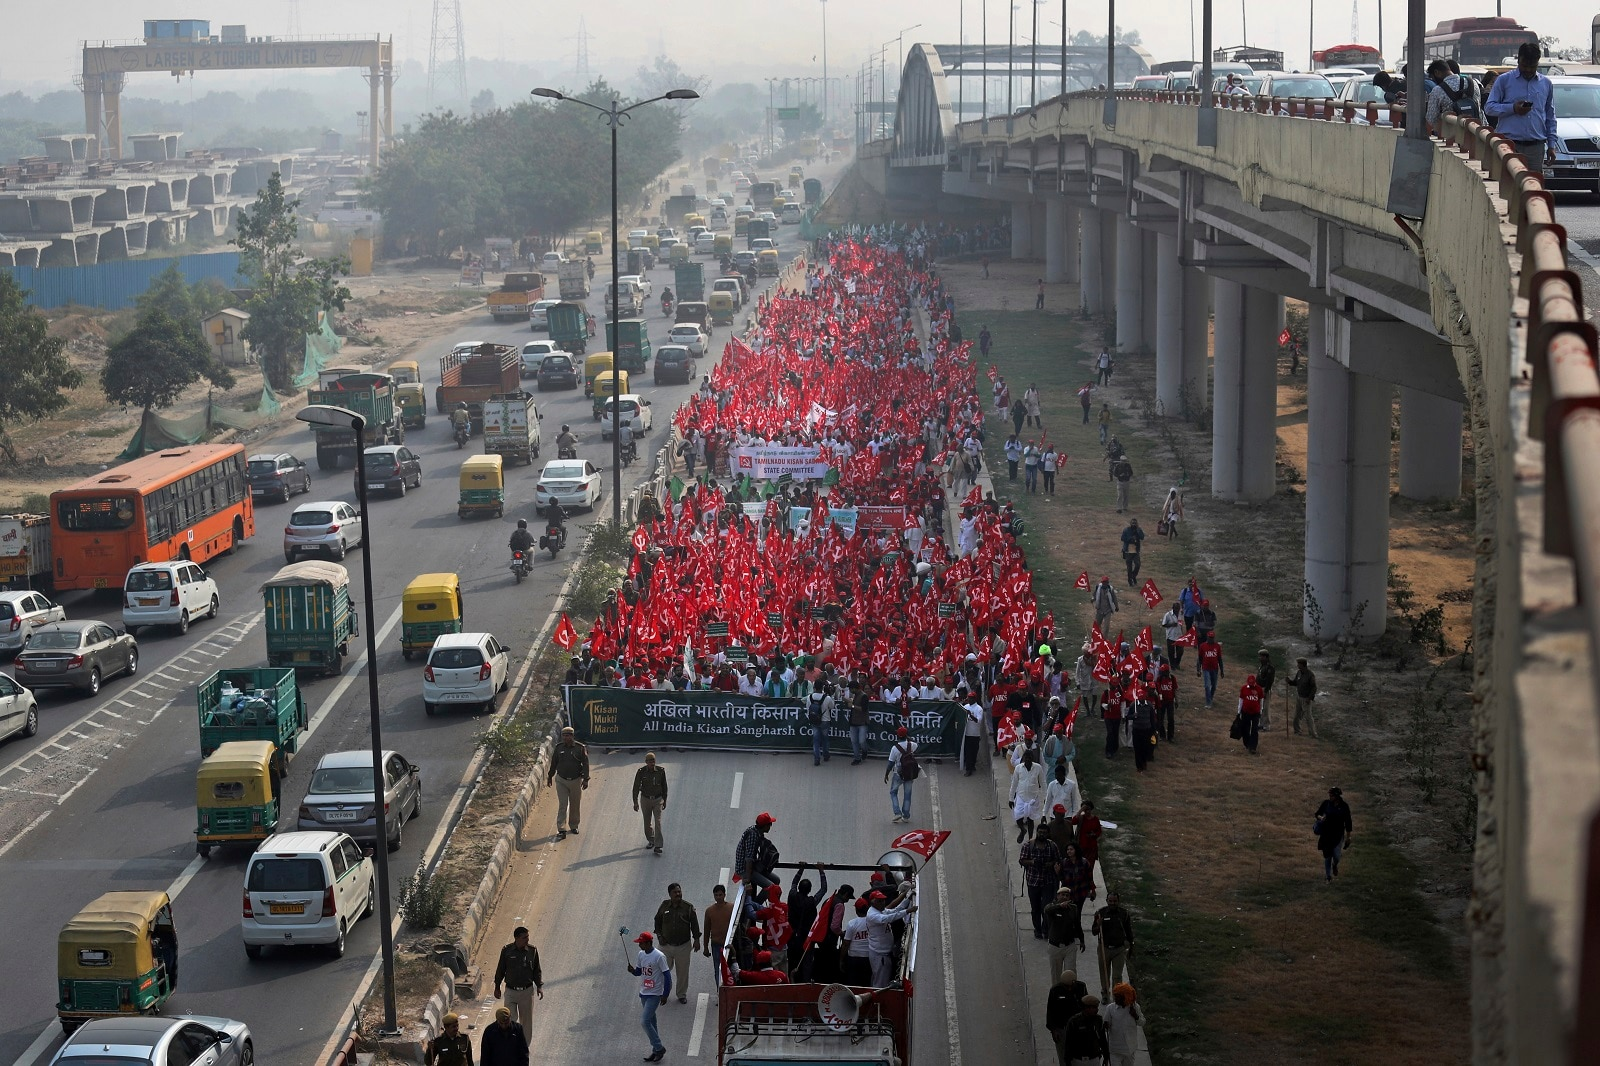 Farmers, workers and agricultural laborers wave red communist flags as they arrive for a two day's protest in New Delhi, India, Thursday, November 29, 2018. (AP Photo/Manish Swarup)